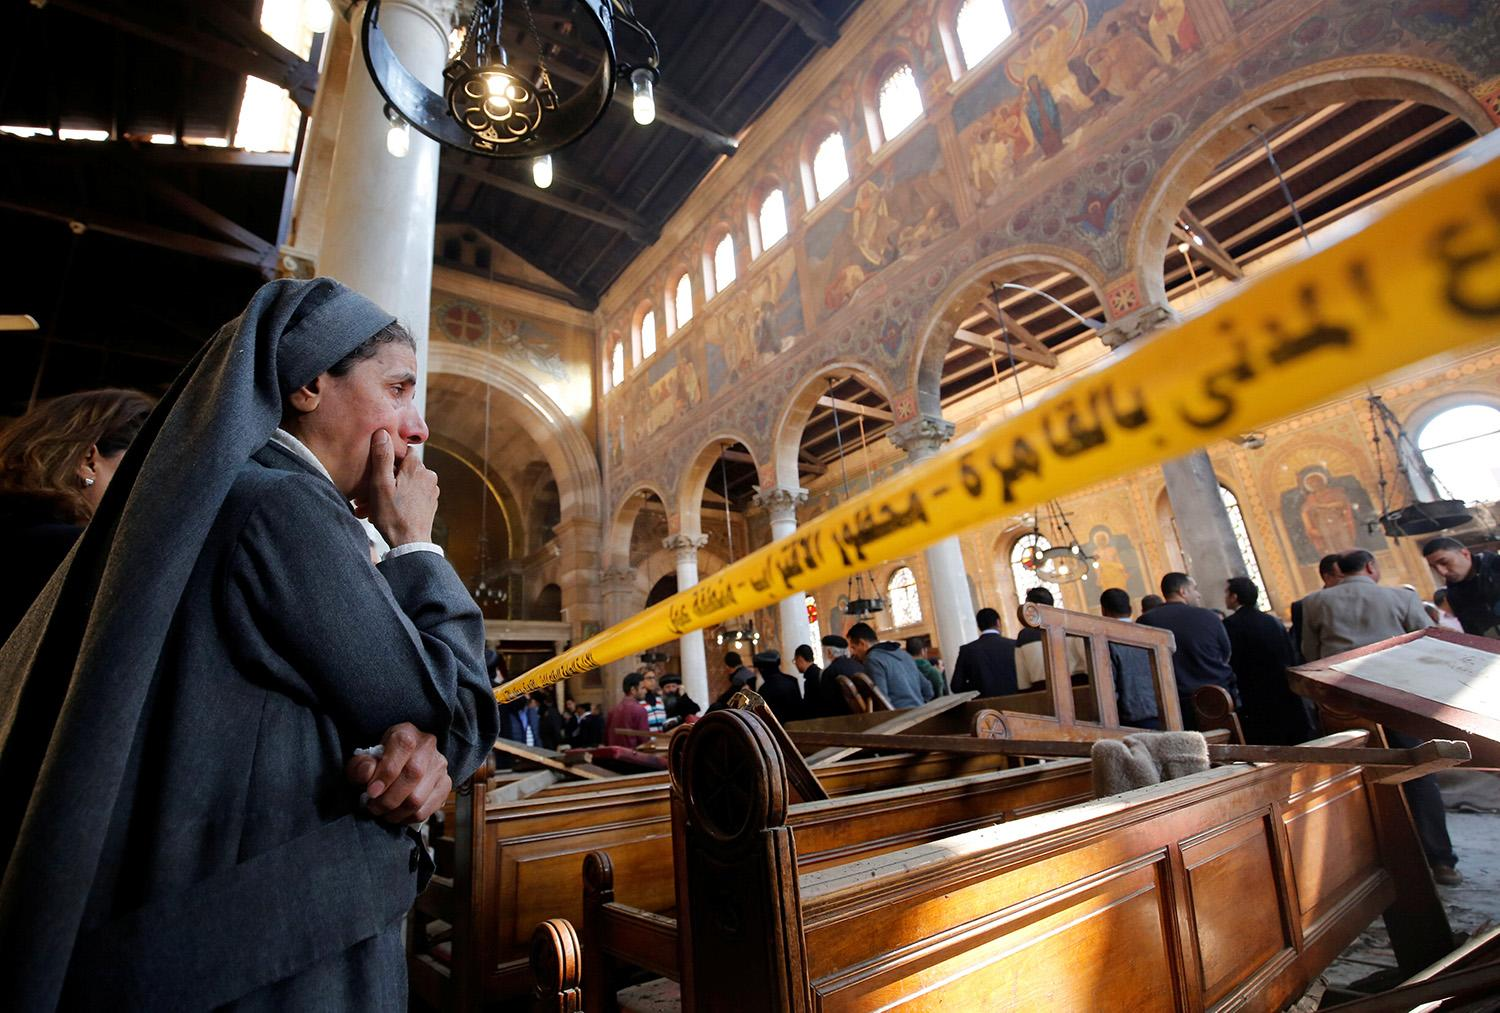 <p>A nun cries as she stands at the scene inside Cairo's Coptic cathedral, following a bombing, in Egypt Dec. 11, 2016. (Photo: Amr Abdallah Dalsh/Reuters) </p>